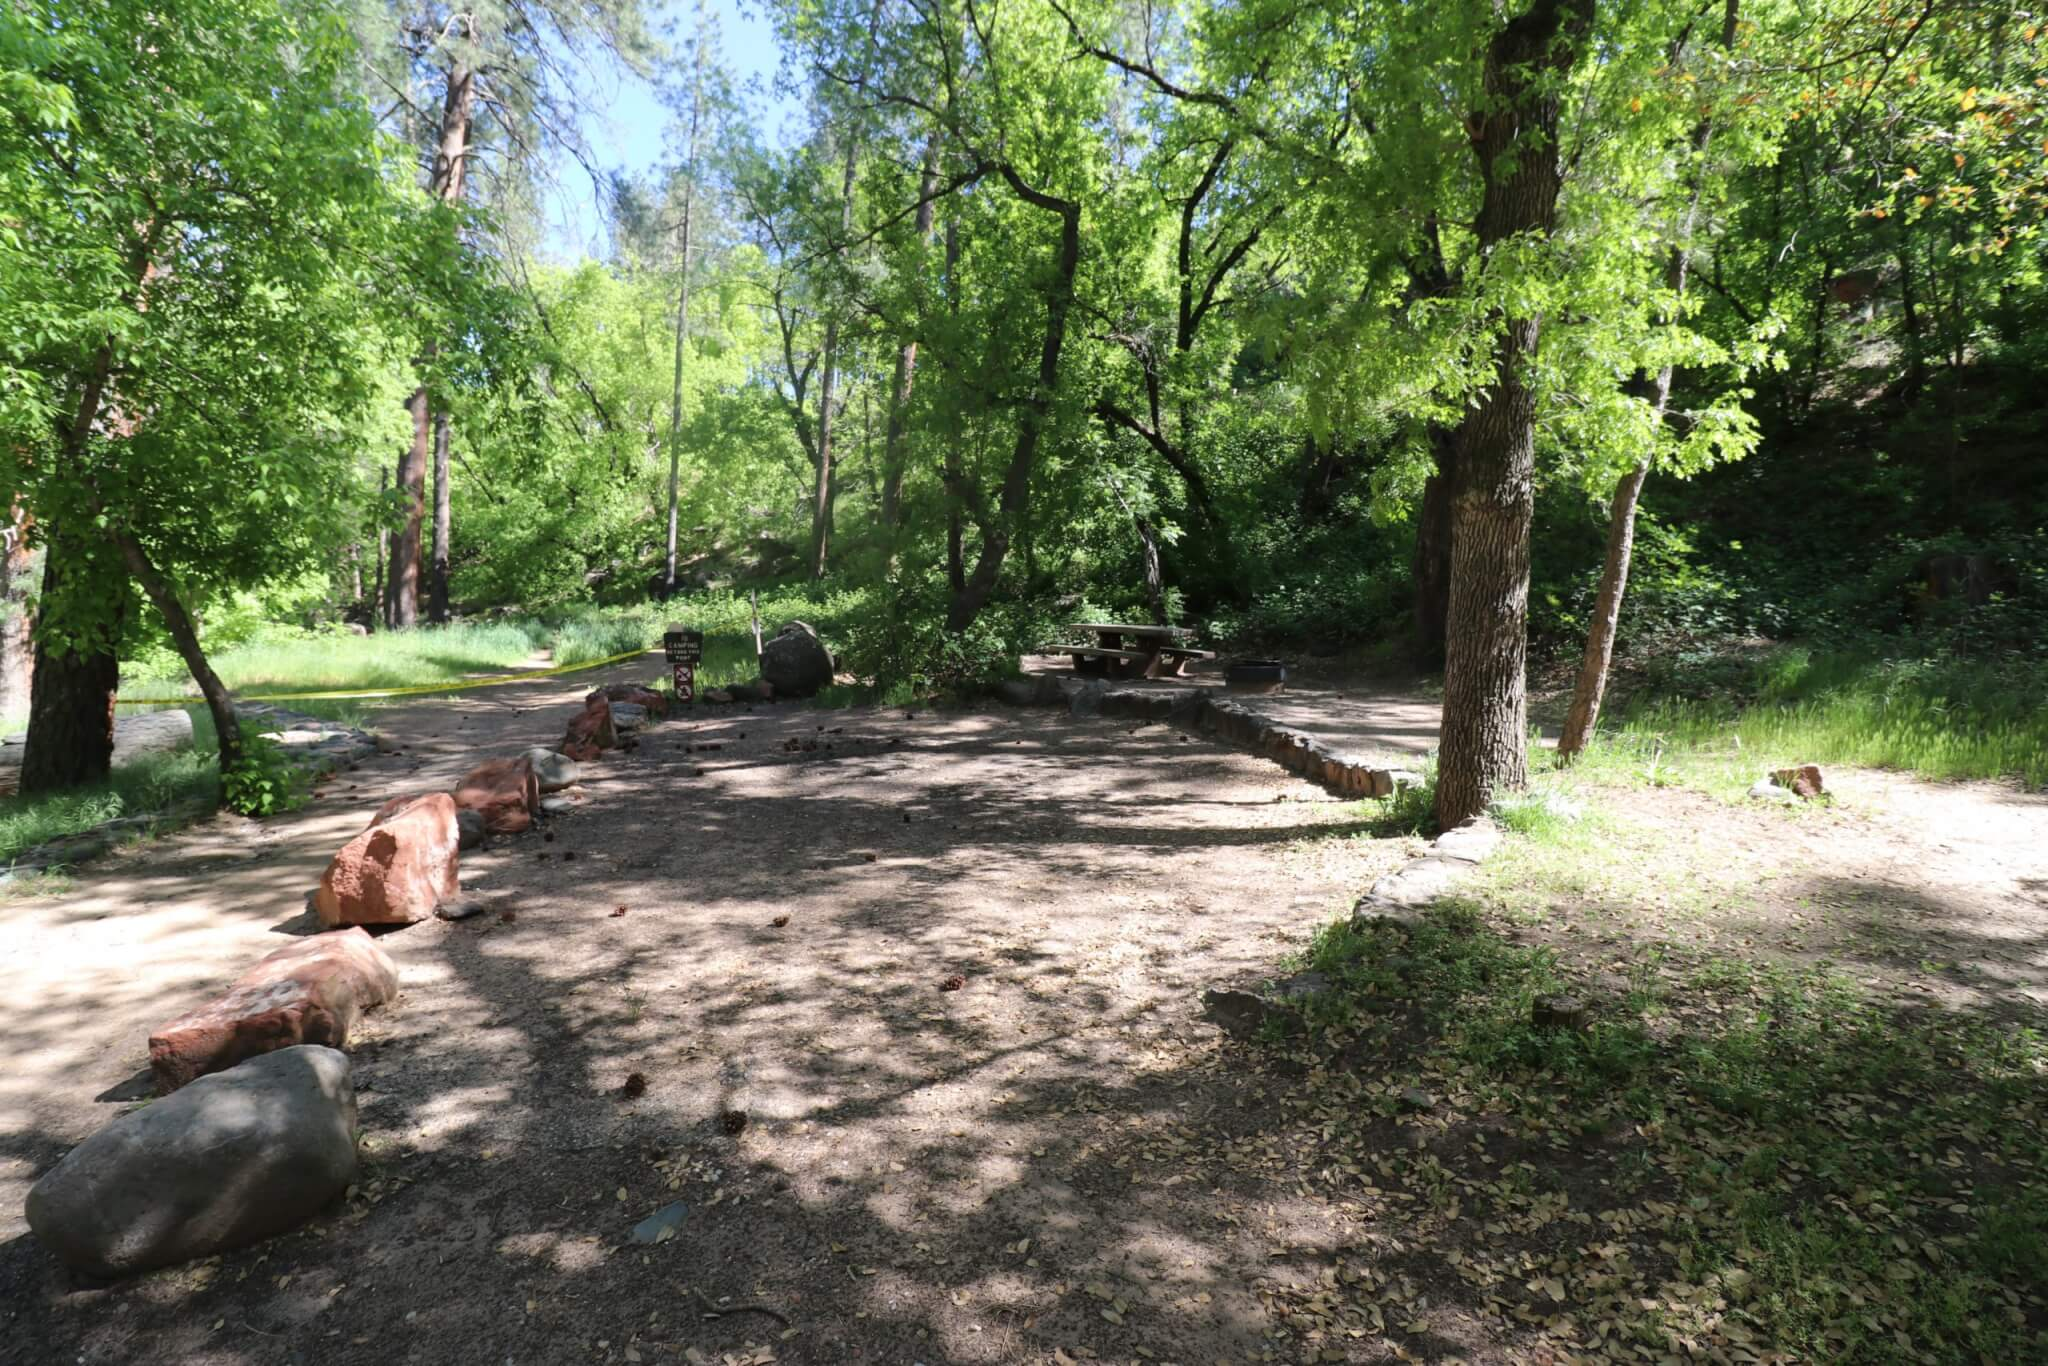 Sedona Area Campgrounds to reopen on May 20, 2020 - Manzanita Site 10